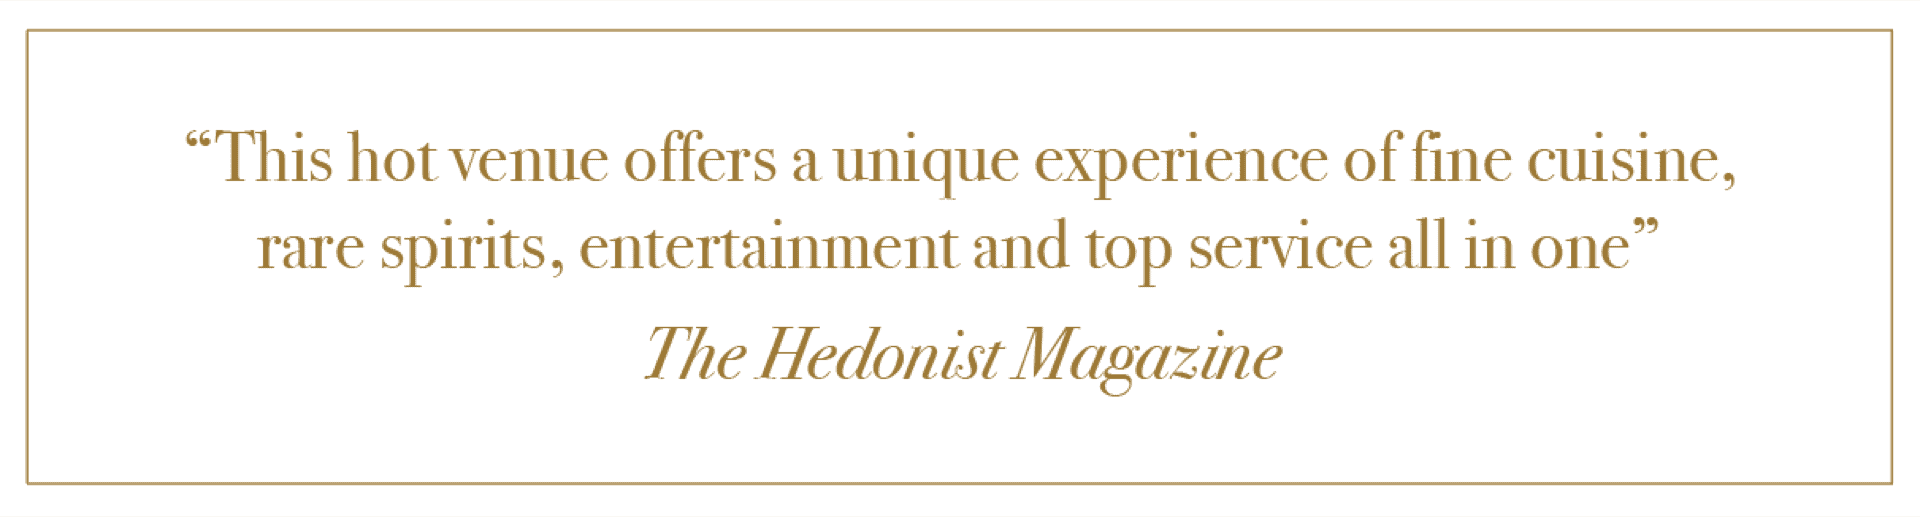 A Review from The Hedonist Magazine